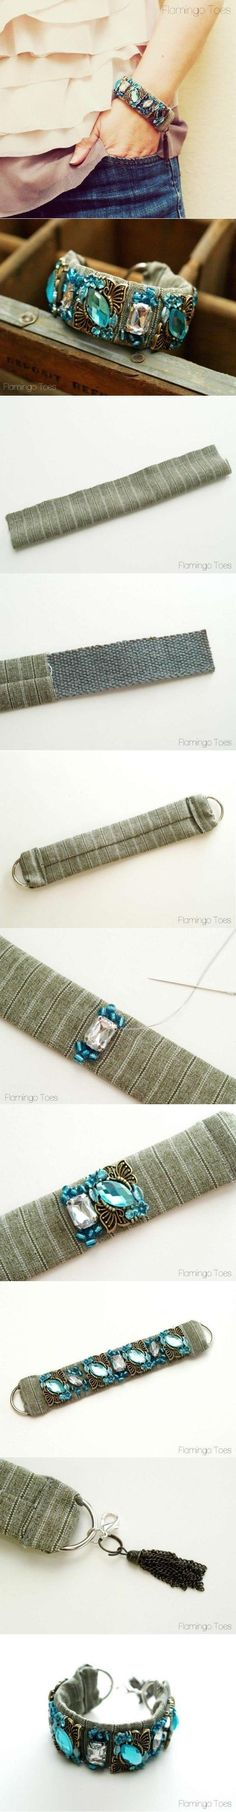 DIY Beautiful Handmade Wristband